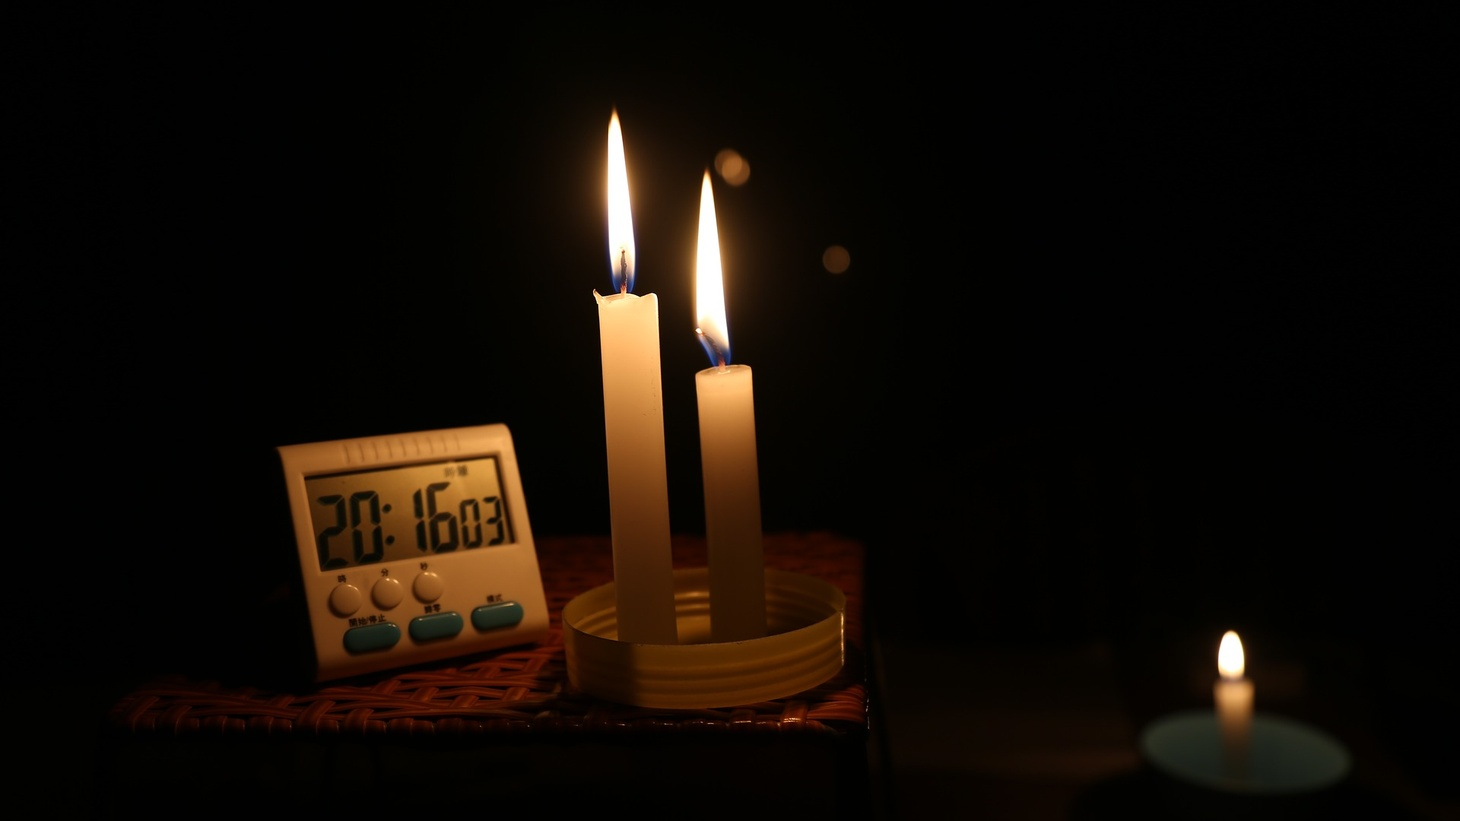 Candles during a power outage.